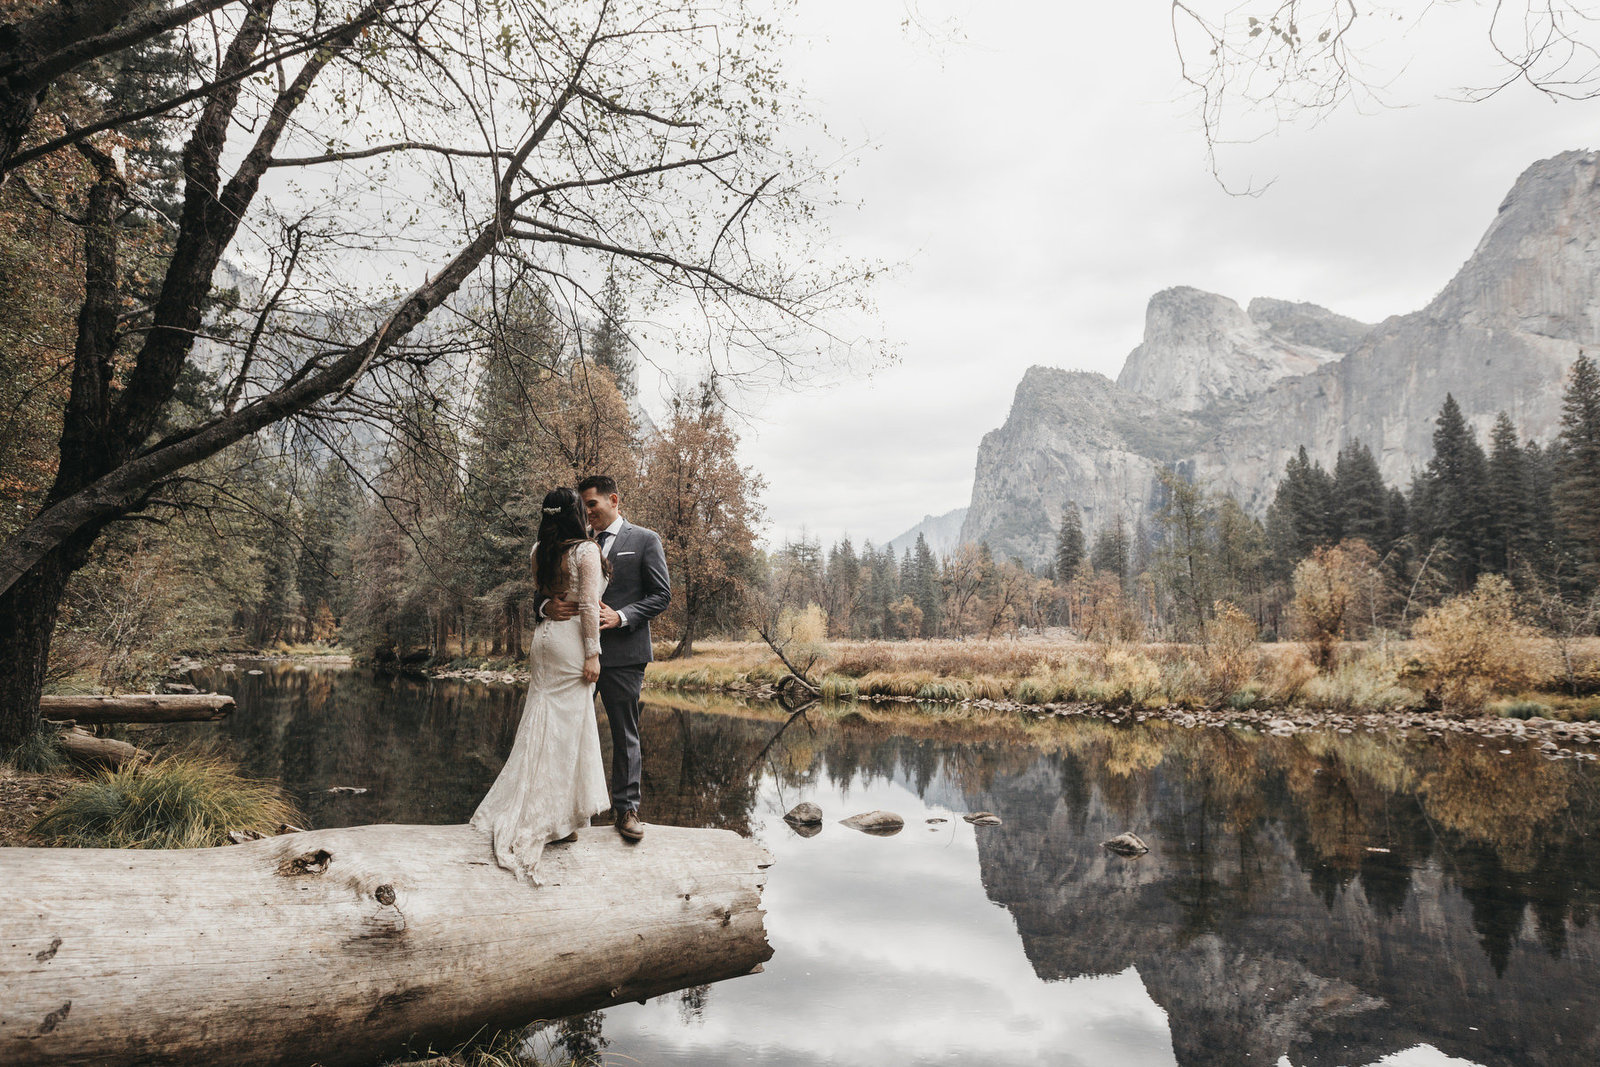 athena-and-camron-yosemite-elopement-wedding-photographer-elegent-valley-wedding35-half-dome-el-capitan-reflection